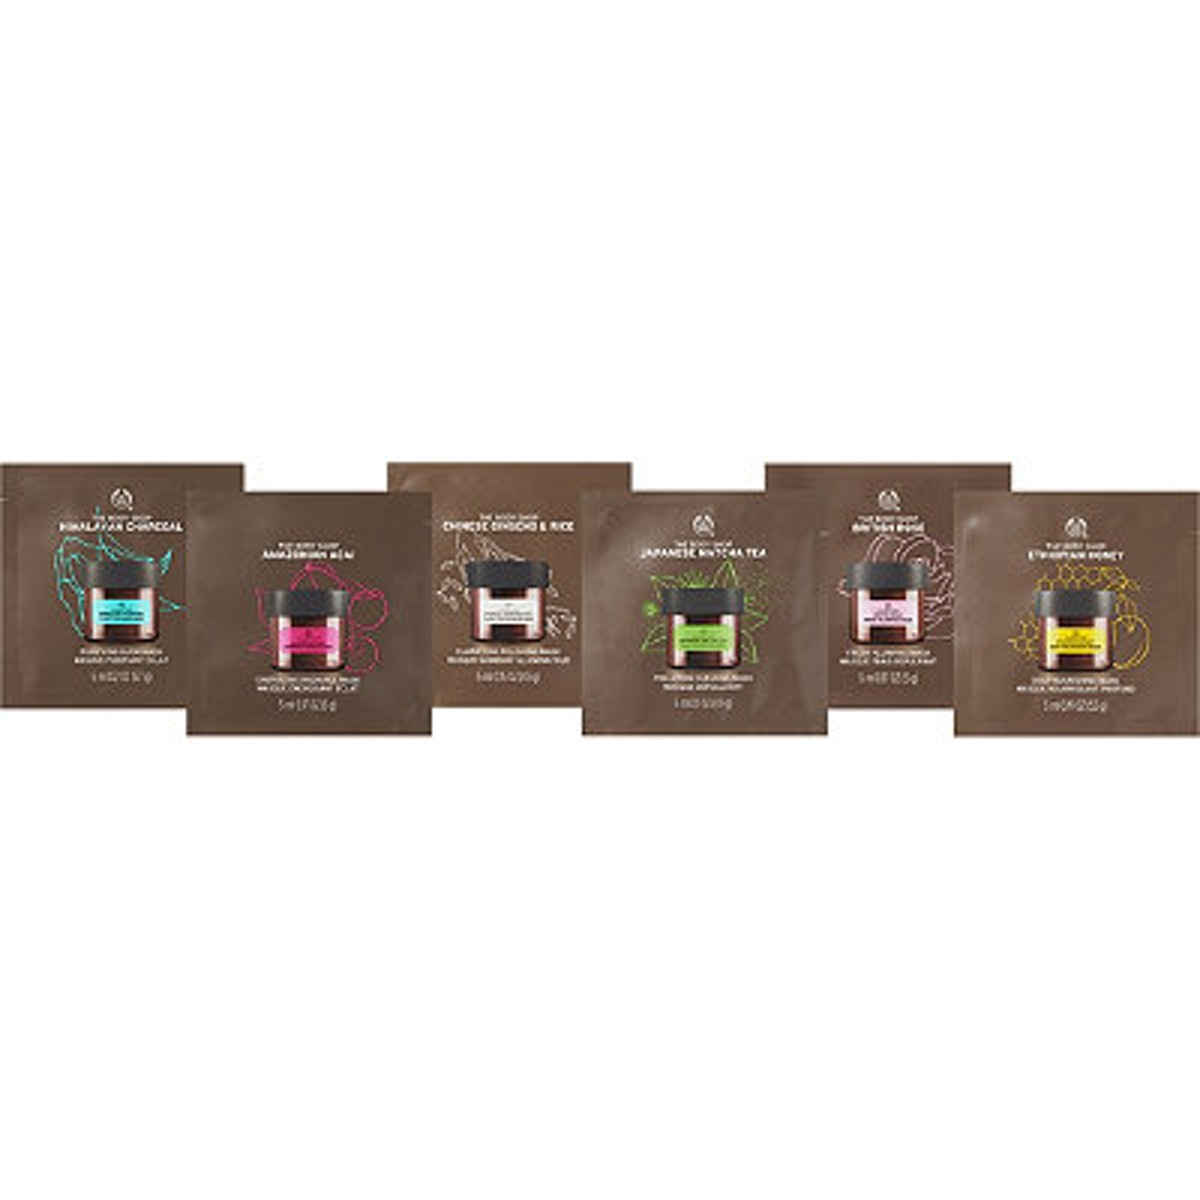 The Body Shop Online Only Multi- Mask Trial Set